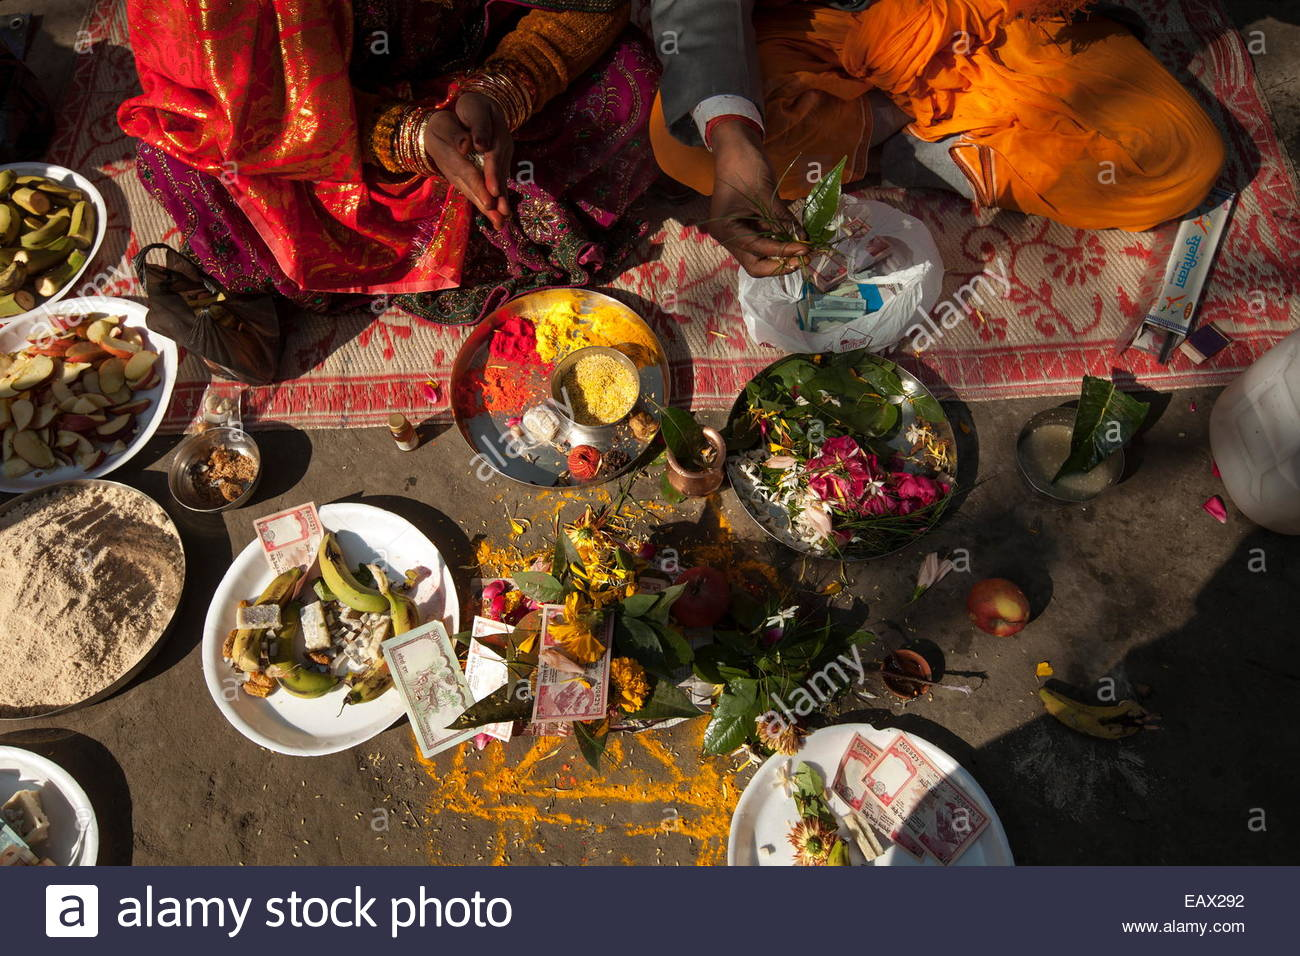 A Hindu marriage ceremony near the Sacred Garden at the Buddha's birthplace. Stock Photo